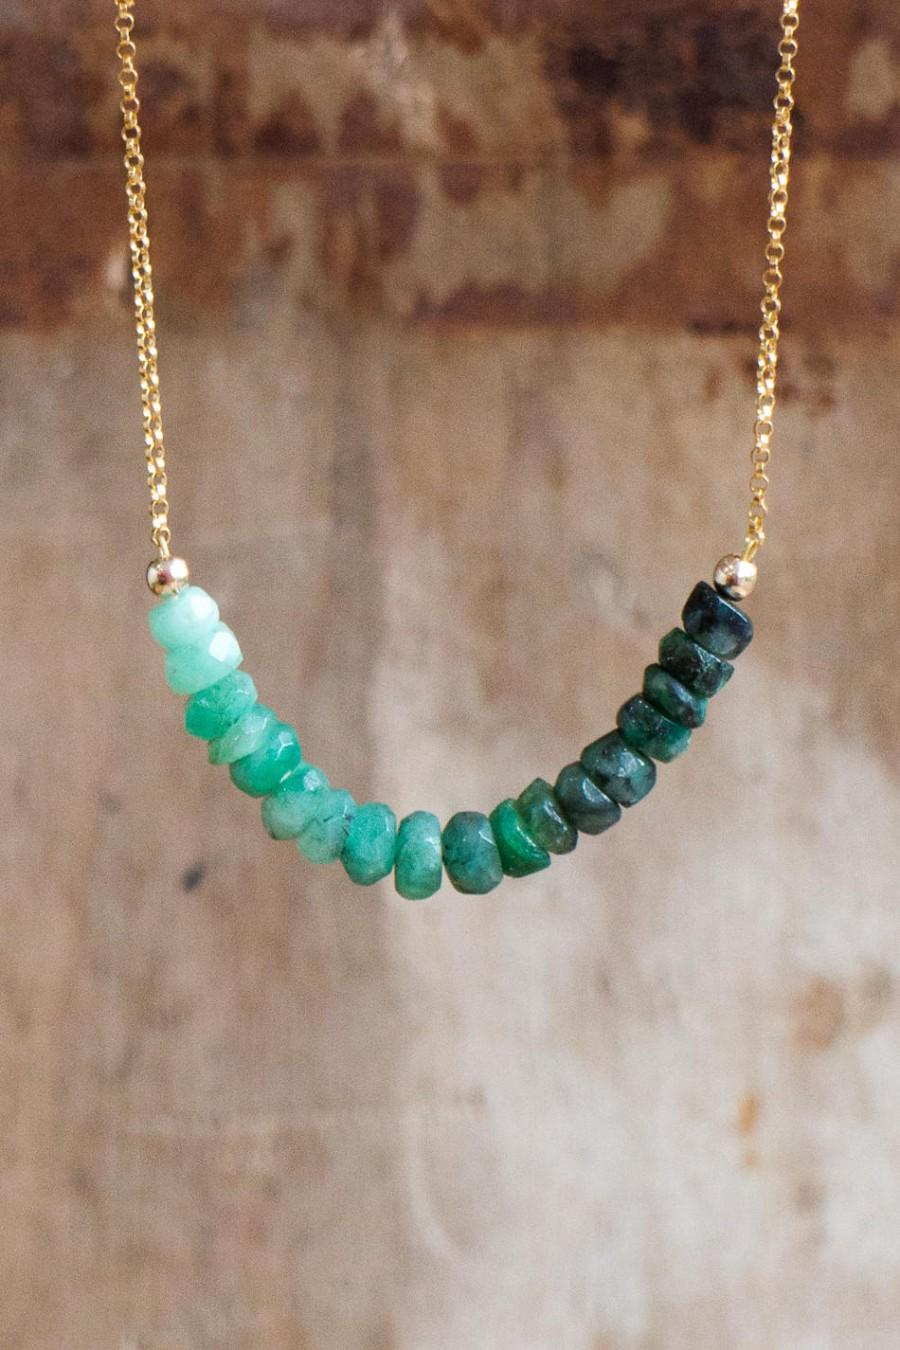 Boda - Raw Emerald Necklace, May Birthstone, Emerald Crystal Row Necklace, Silver Gold Emerald Jewellery, Emerald Ombre Green Layering Necklace